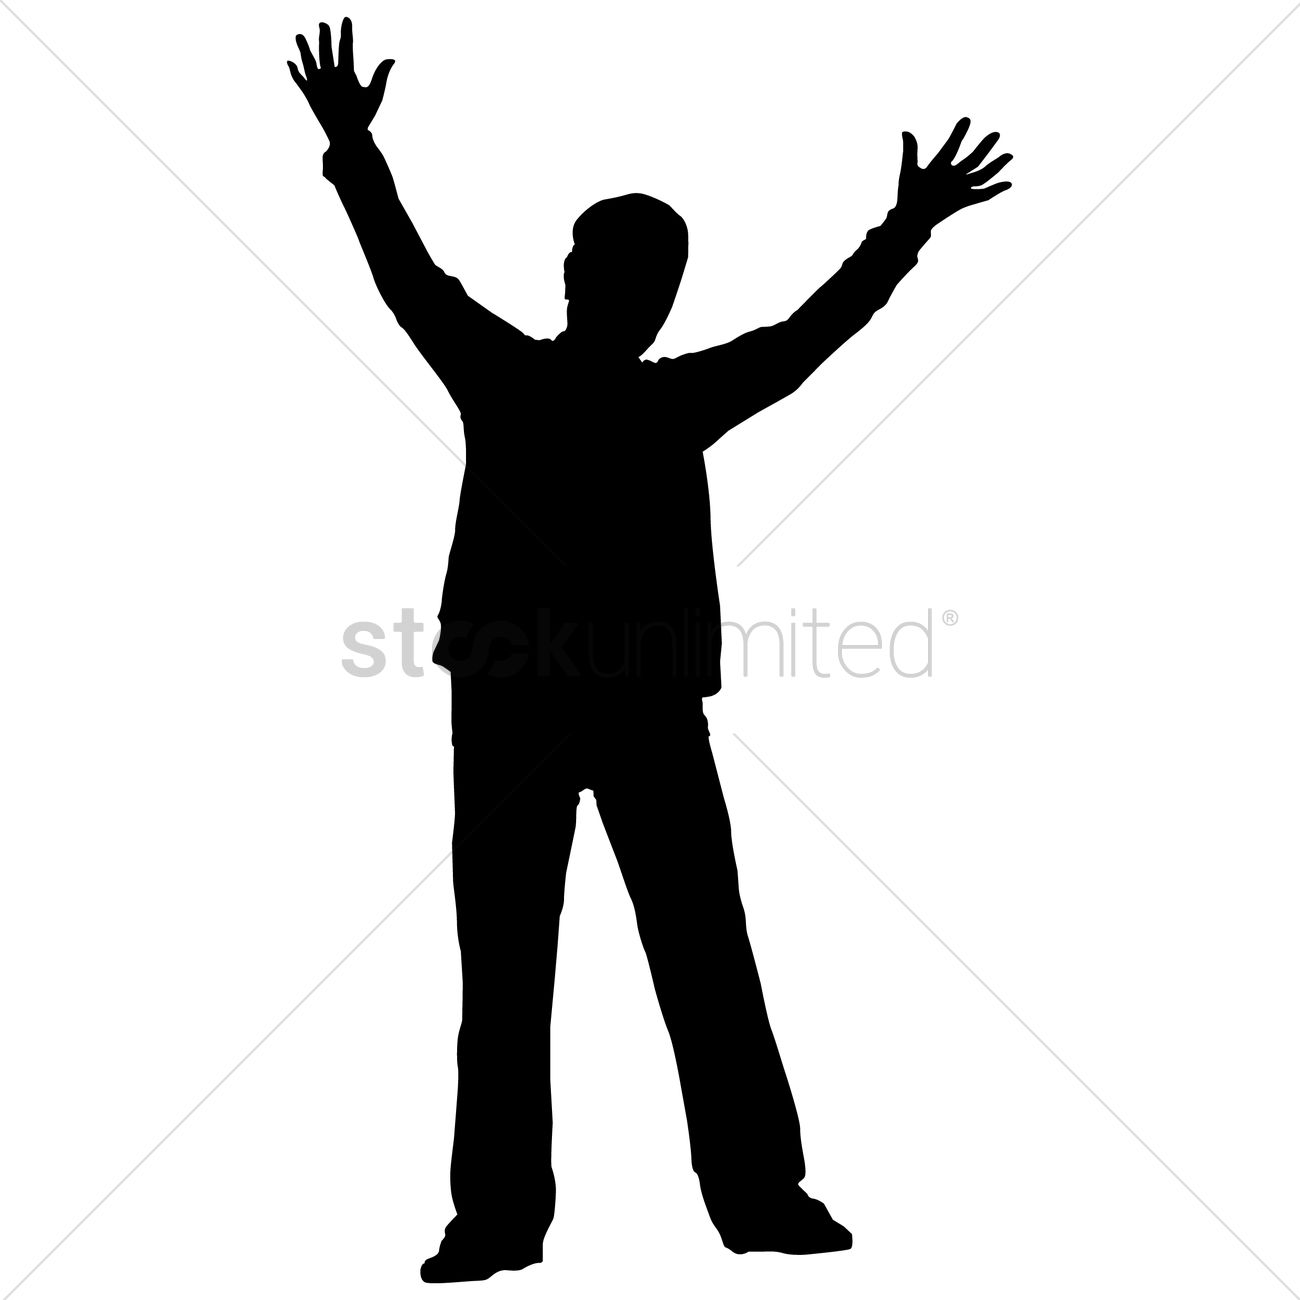 1300x1300 Silhouette Of A Man With Hands Raised Vector Image